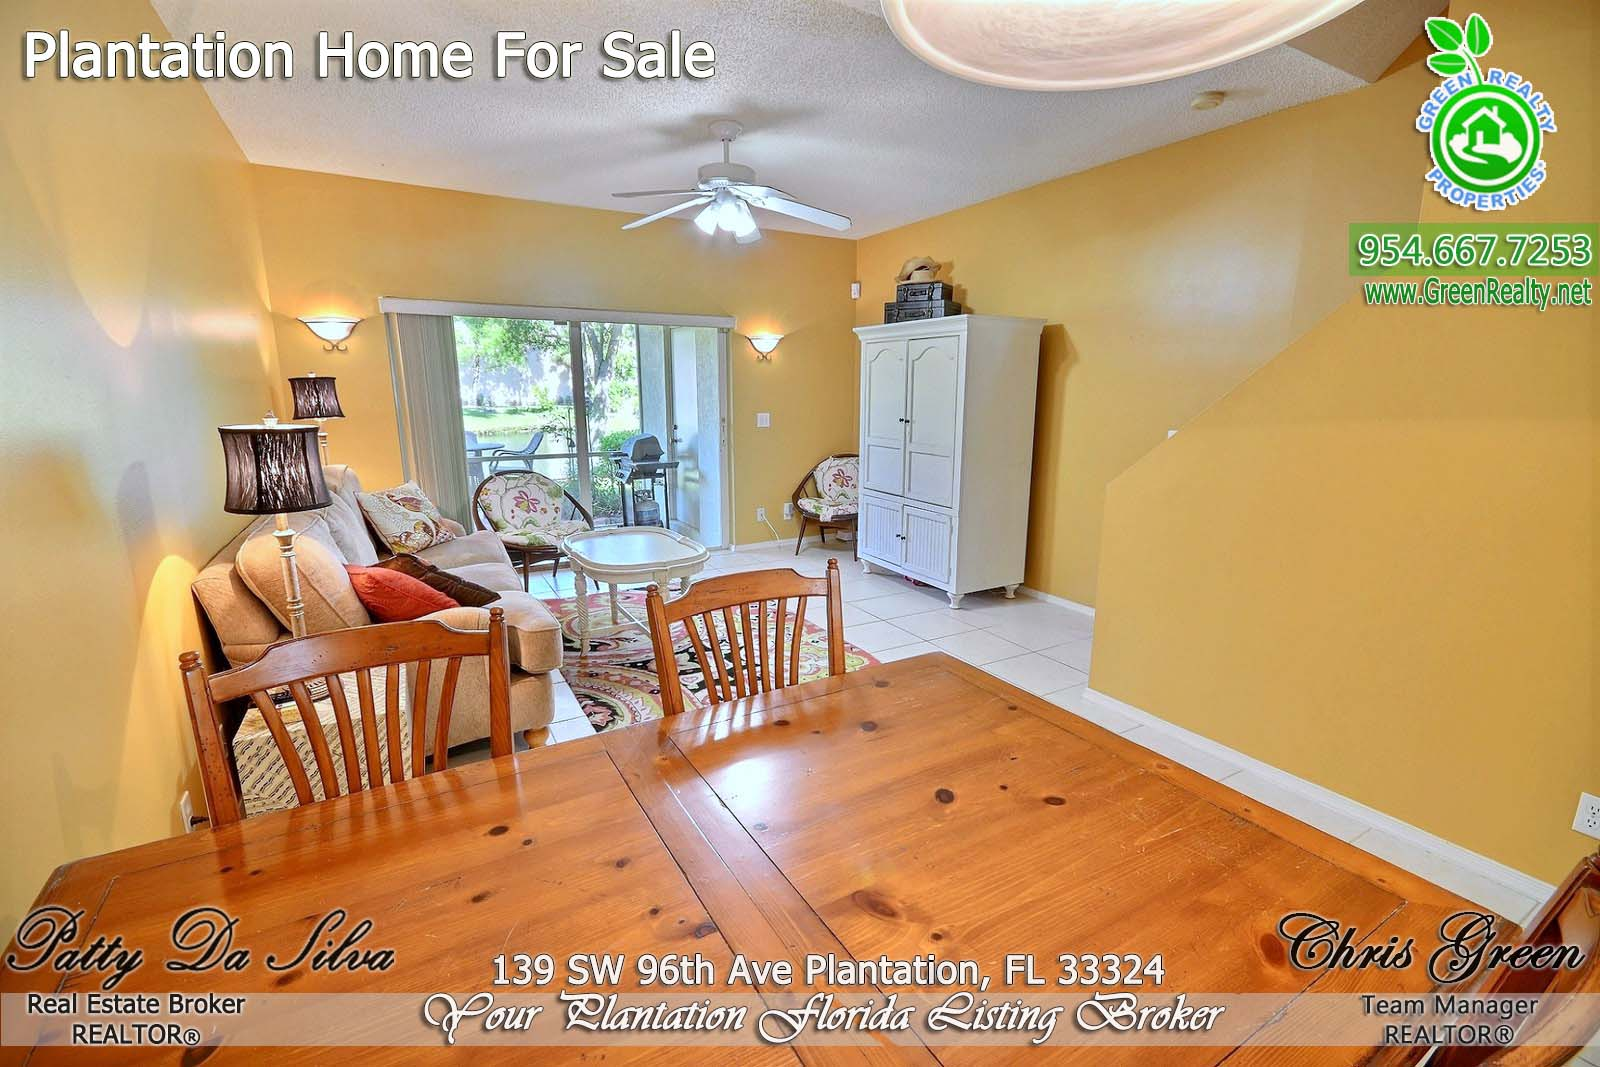 10 Homes For Sale in Plantation Florida (4)